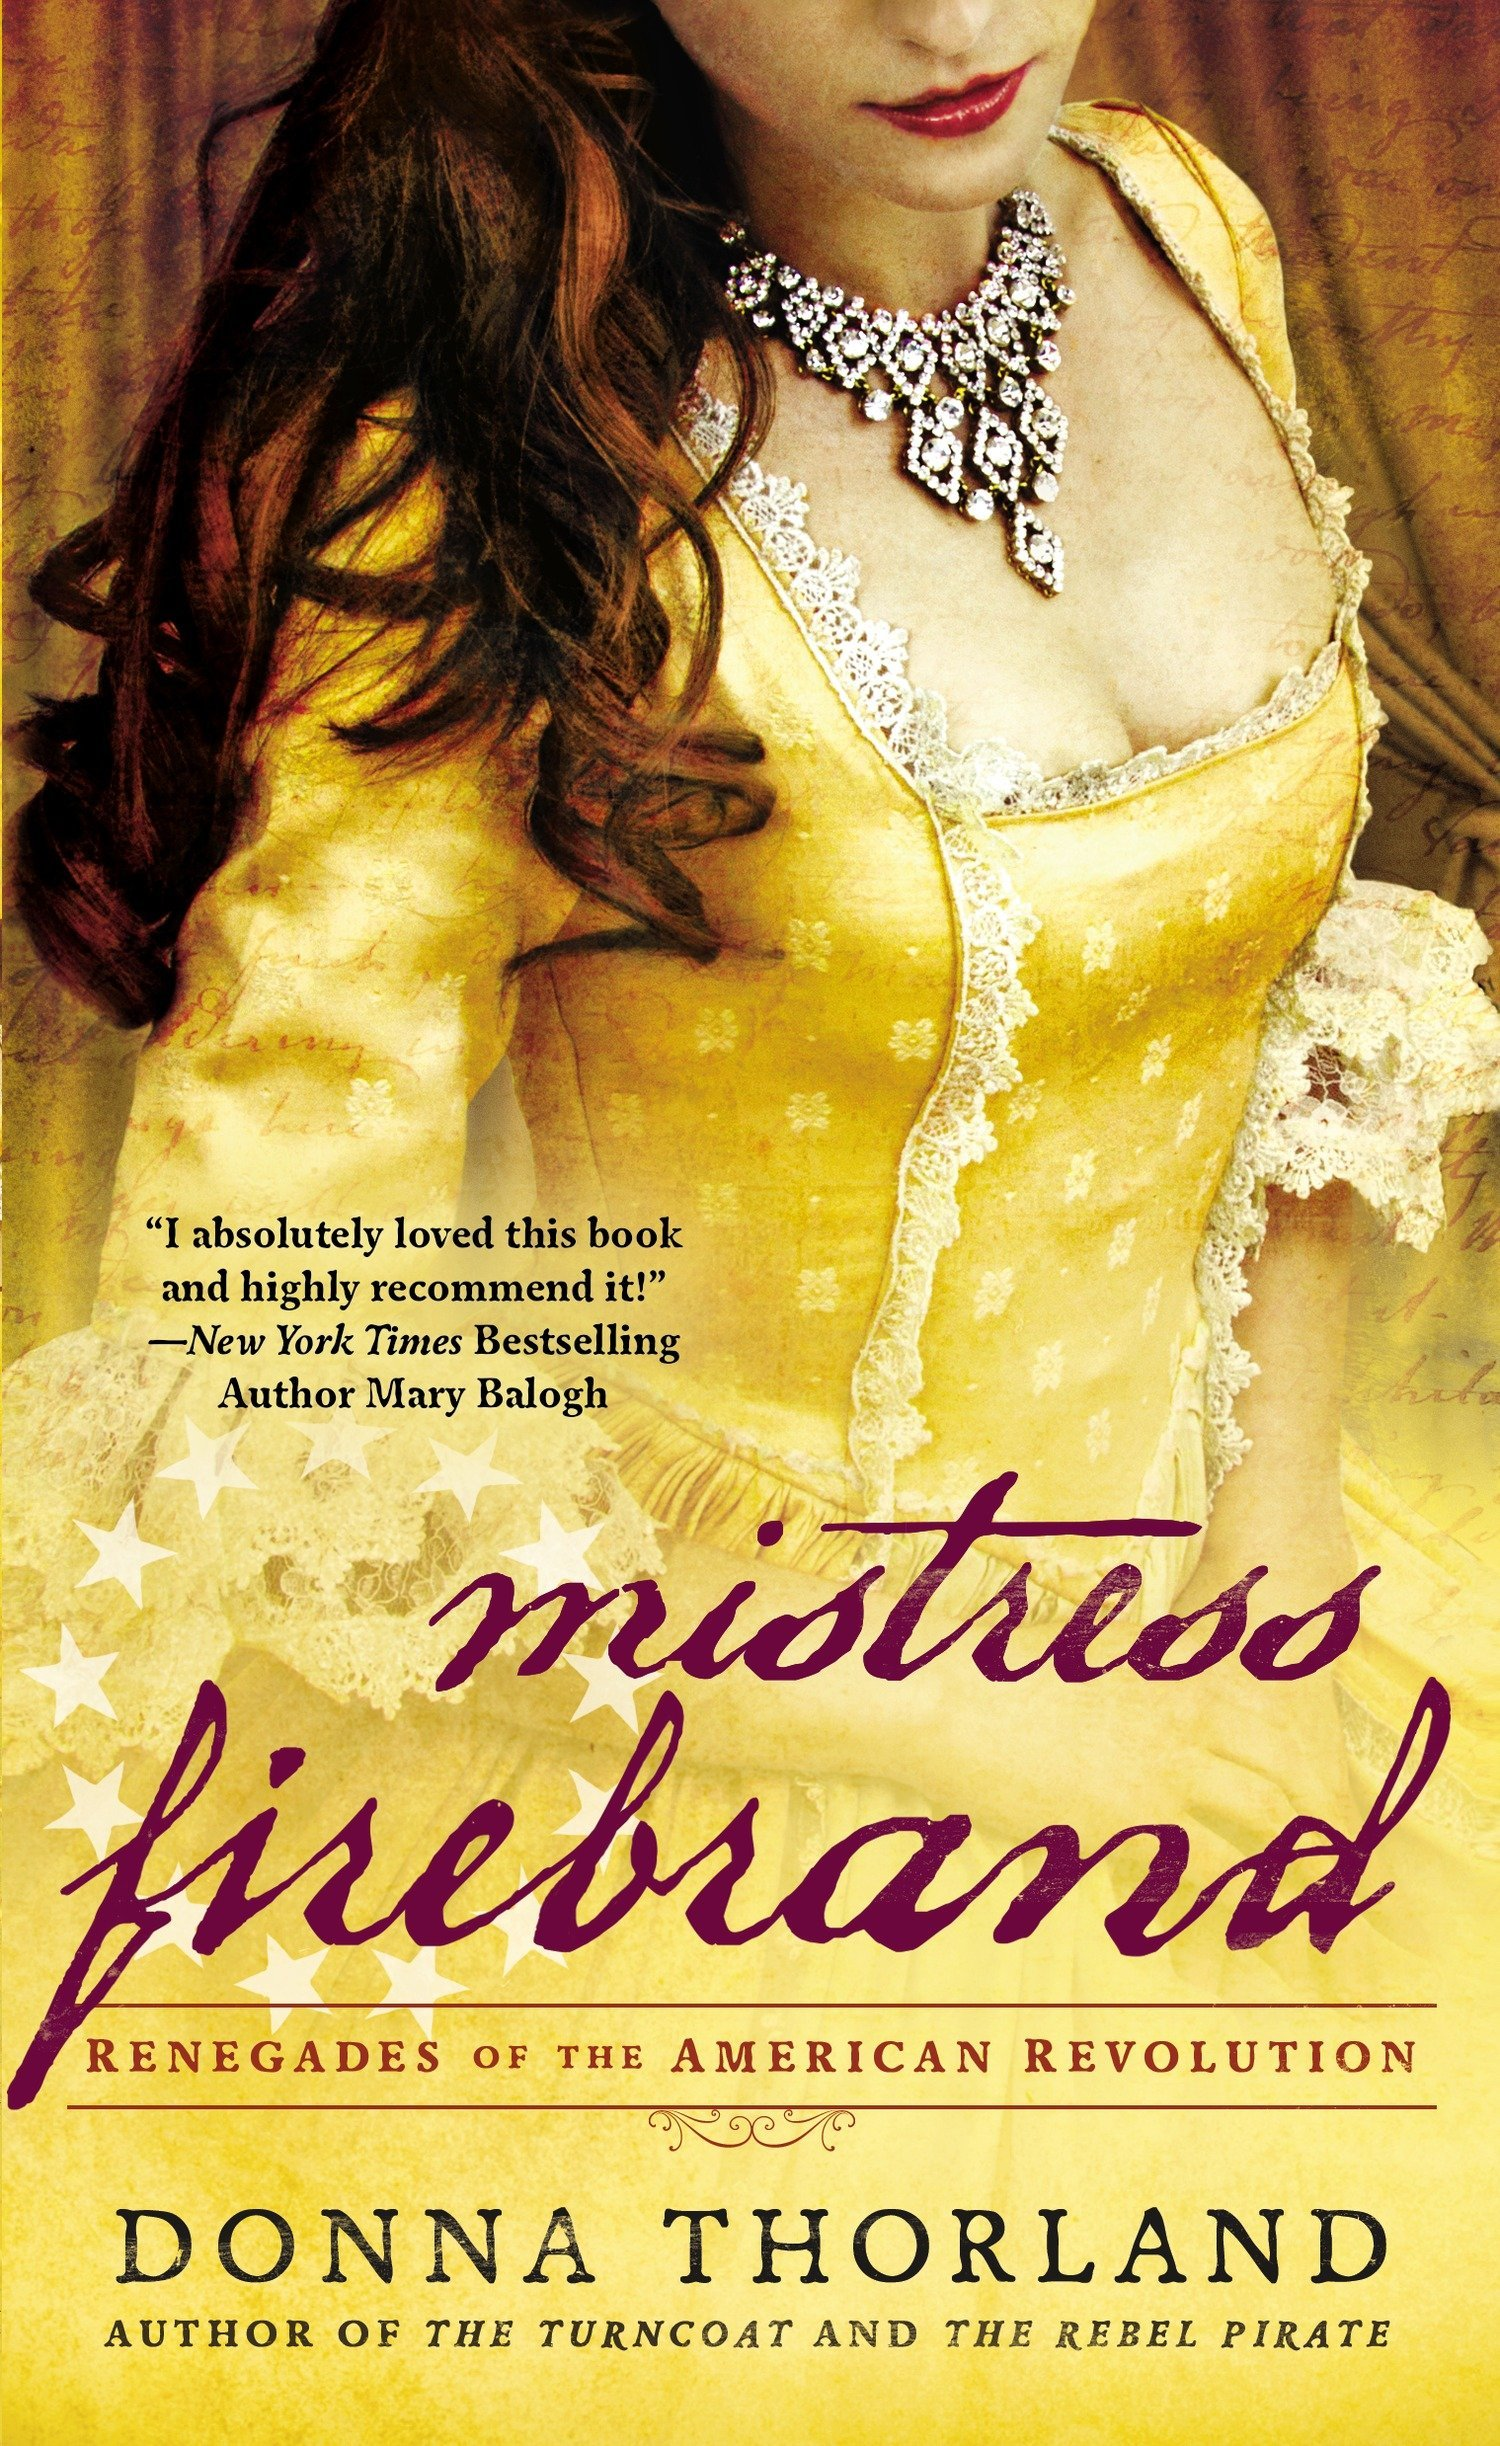 Mistress Firebrand (Renegades of the American Revolution) ePub fb2 ebook